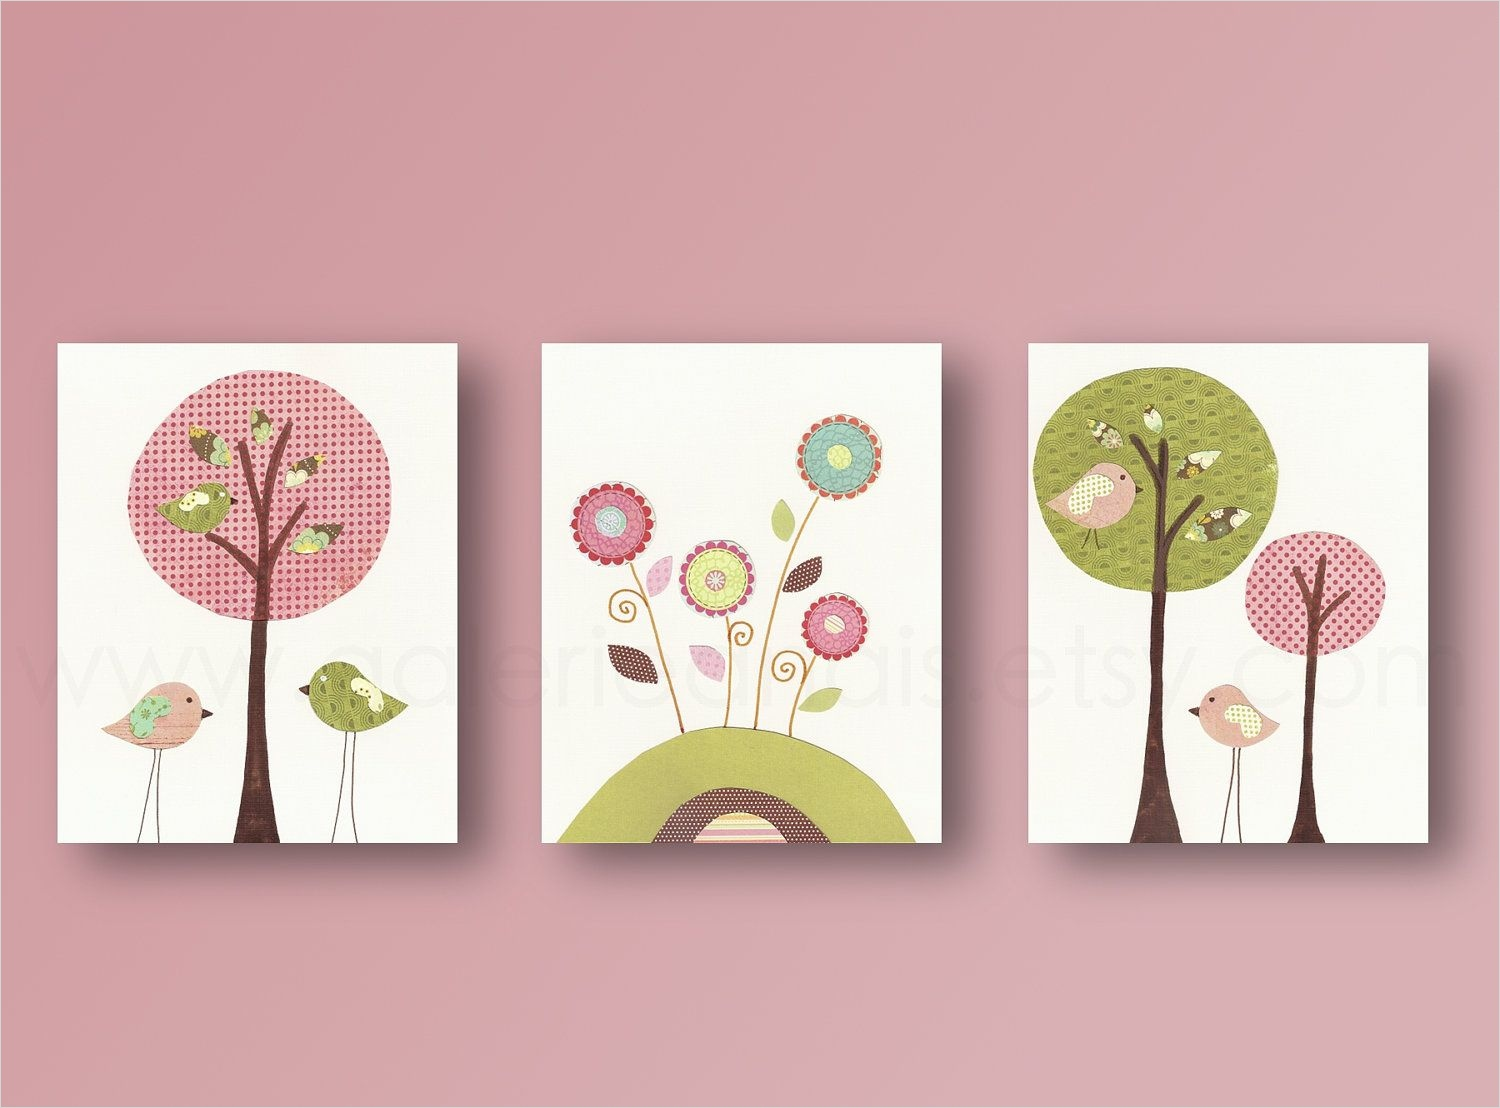 Craft Room Wall Decor 89 Baby Room Art Nursery Decor Birds Baby Nursery Wall Art Nursery Girl Room Tree Kids Art 8